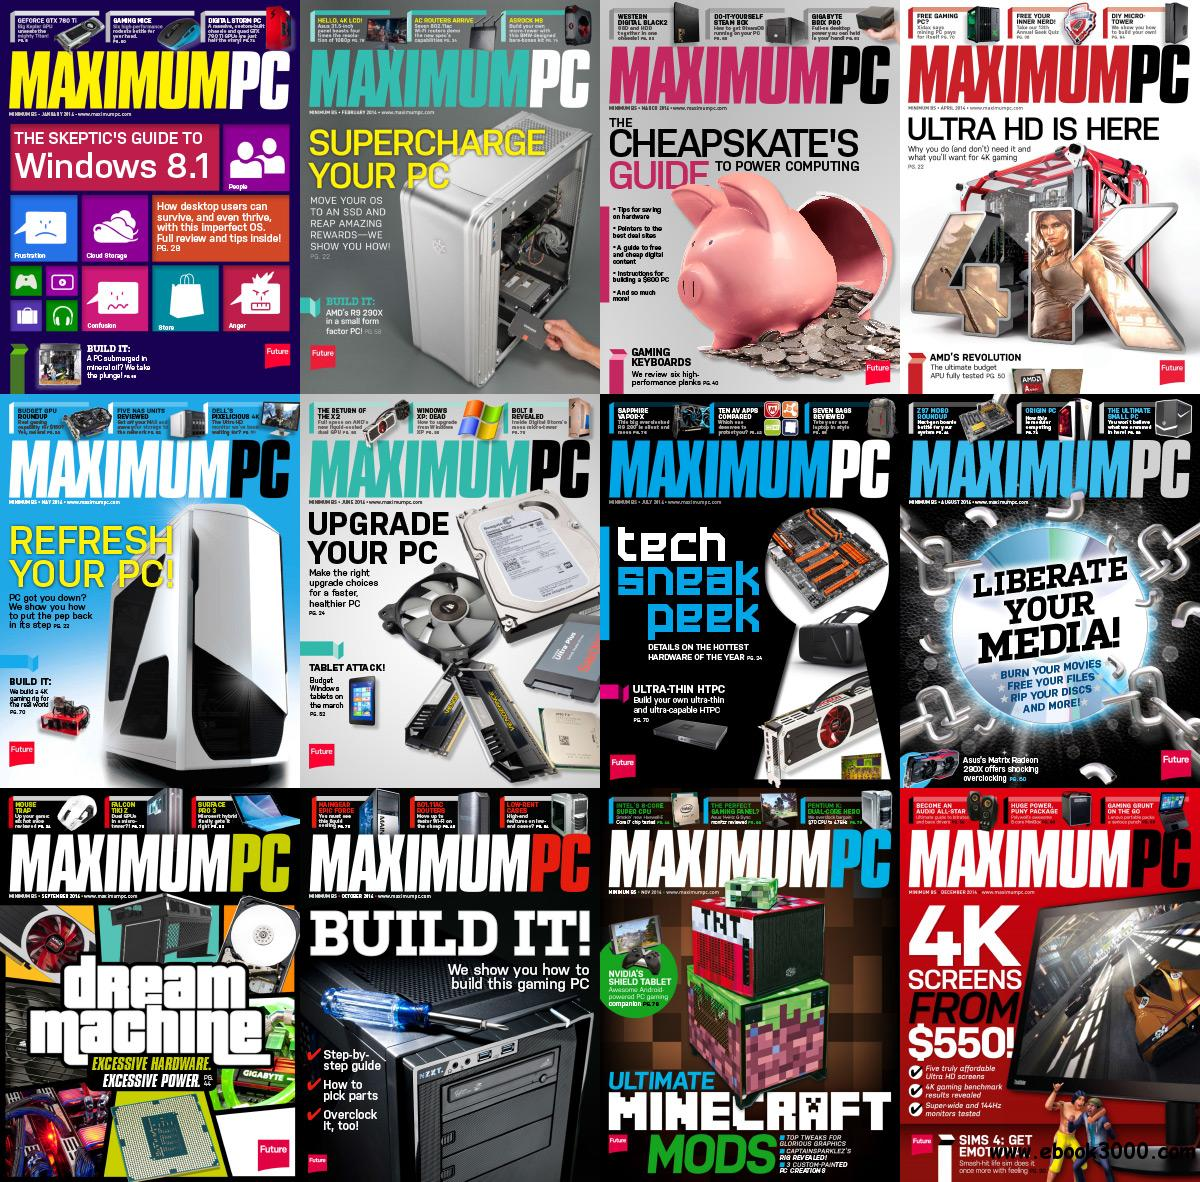 Maximum PC 2014 Full Year Collection free download